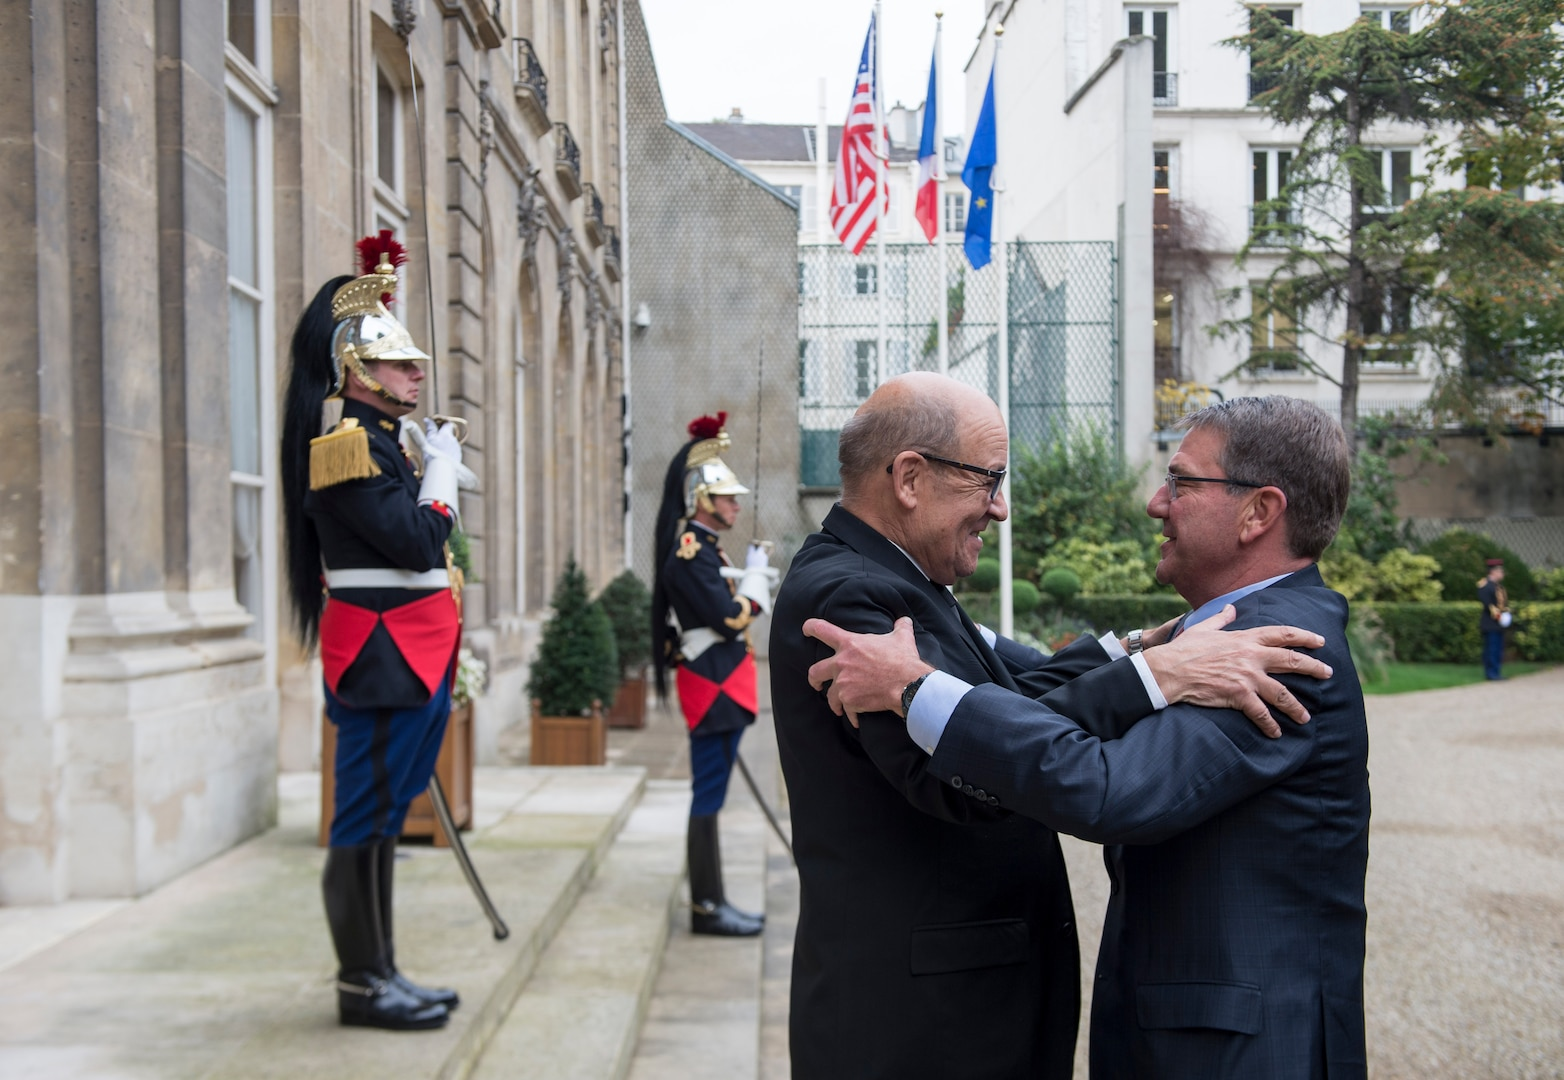 Defense Secretary Ash Carter meets with French Defense Minister Jean-Yves Le Drian in Paris prior to a small group defense ministerial to discuss efforts to counter the Islamic State of Iraq and the Levant, Oct. 25, 2016. DoD photo by Air Force Tech. Sgt. Brigitte N. Brantley